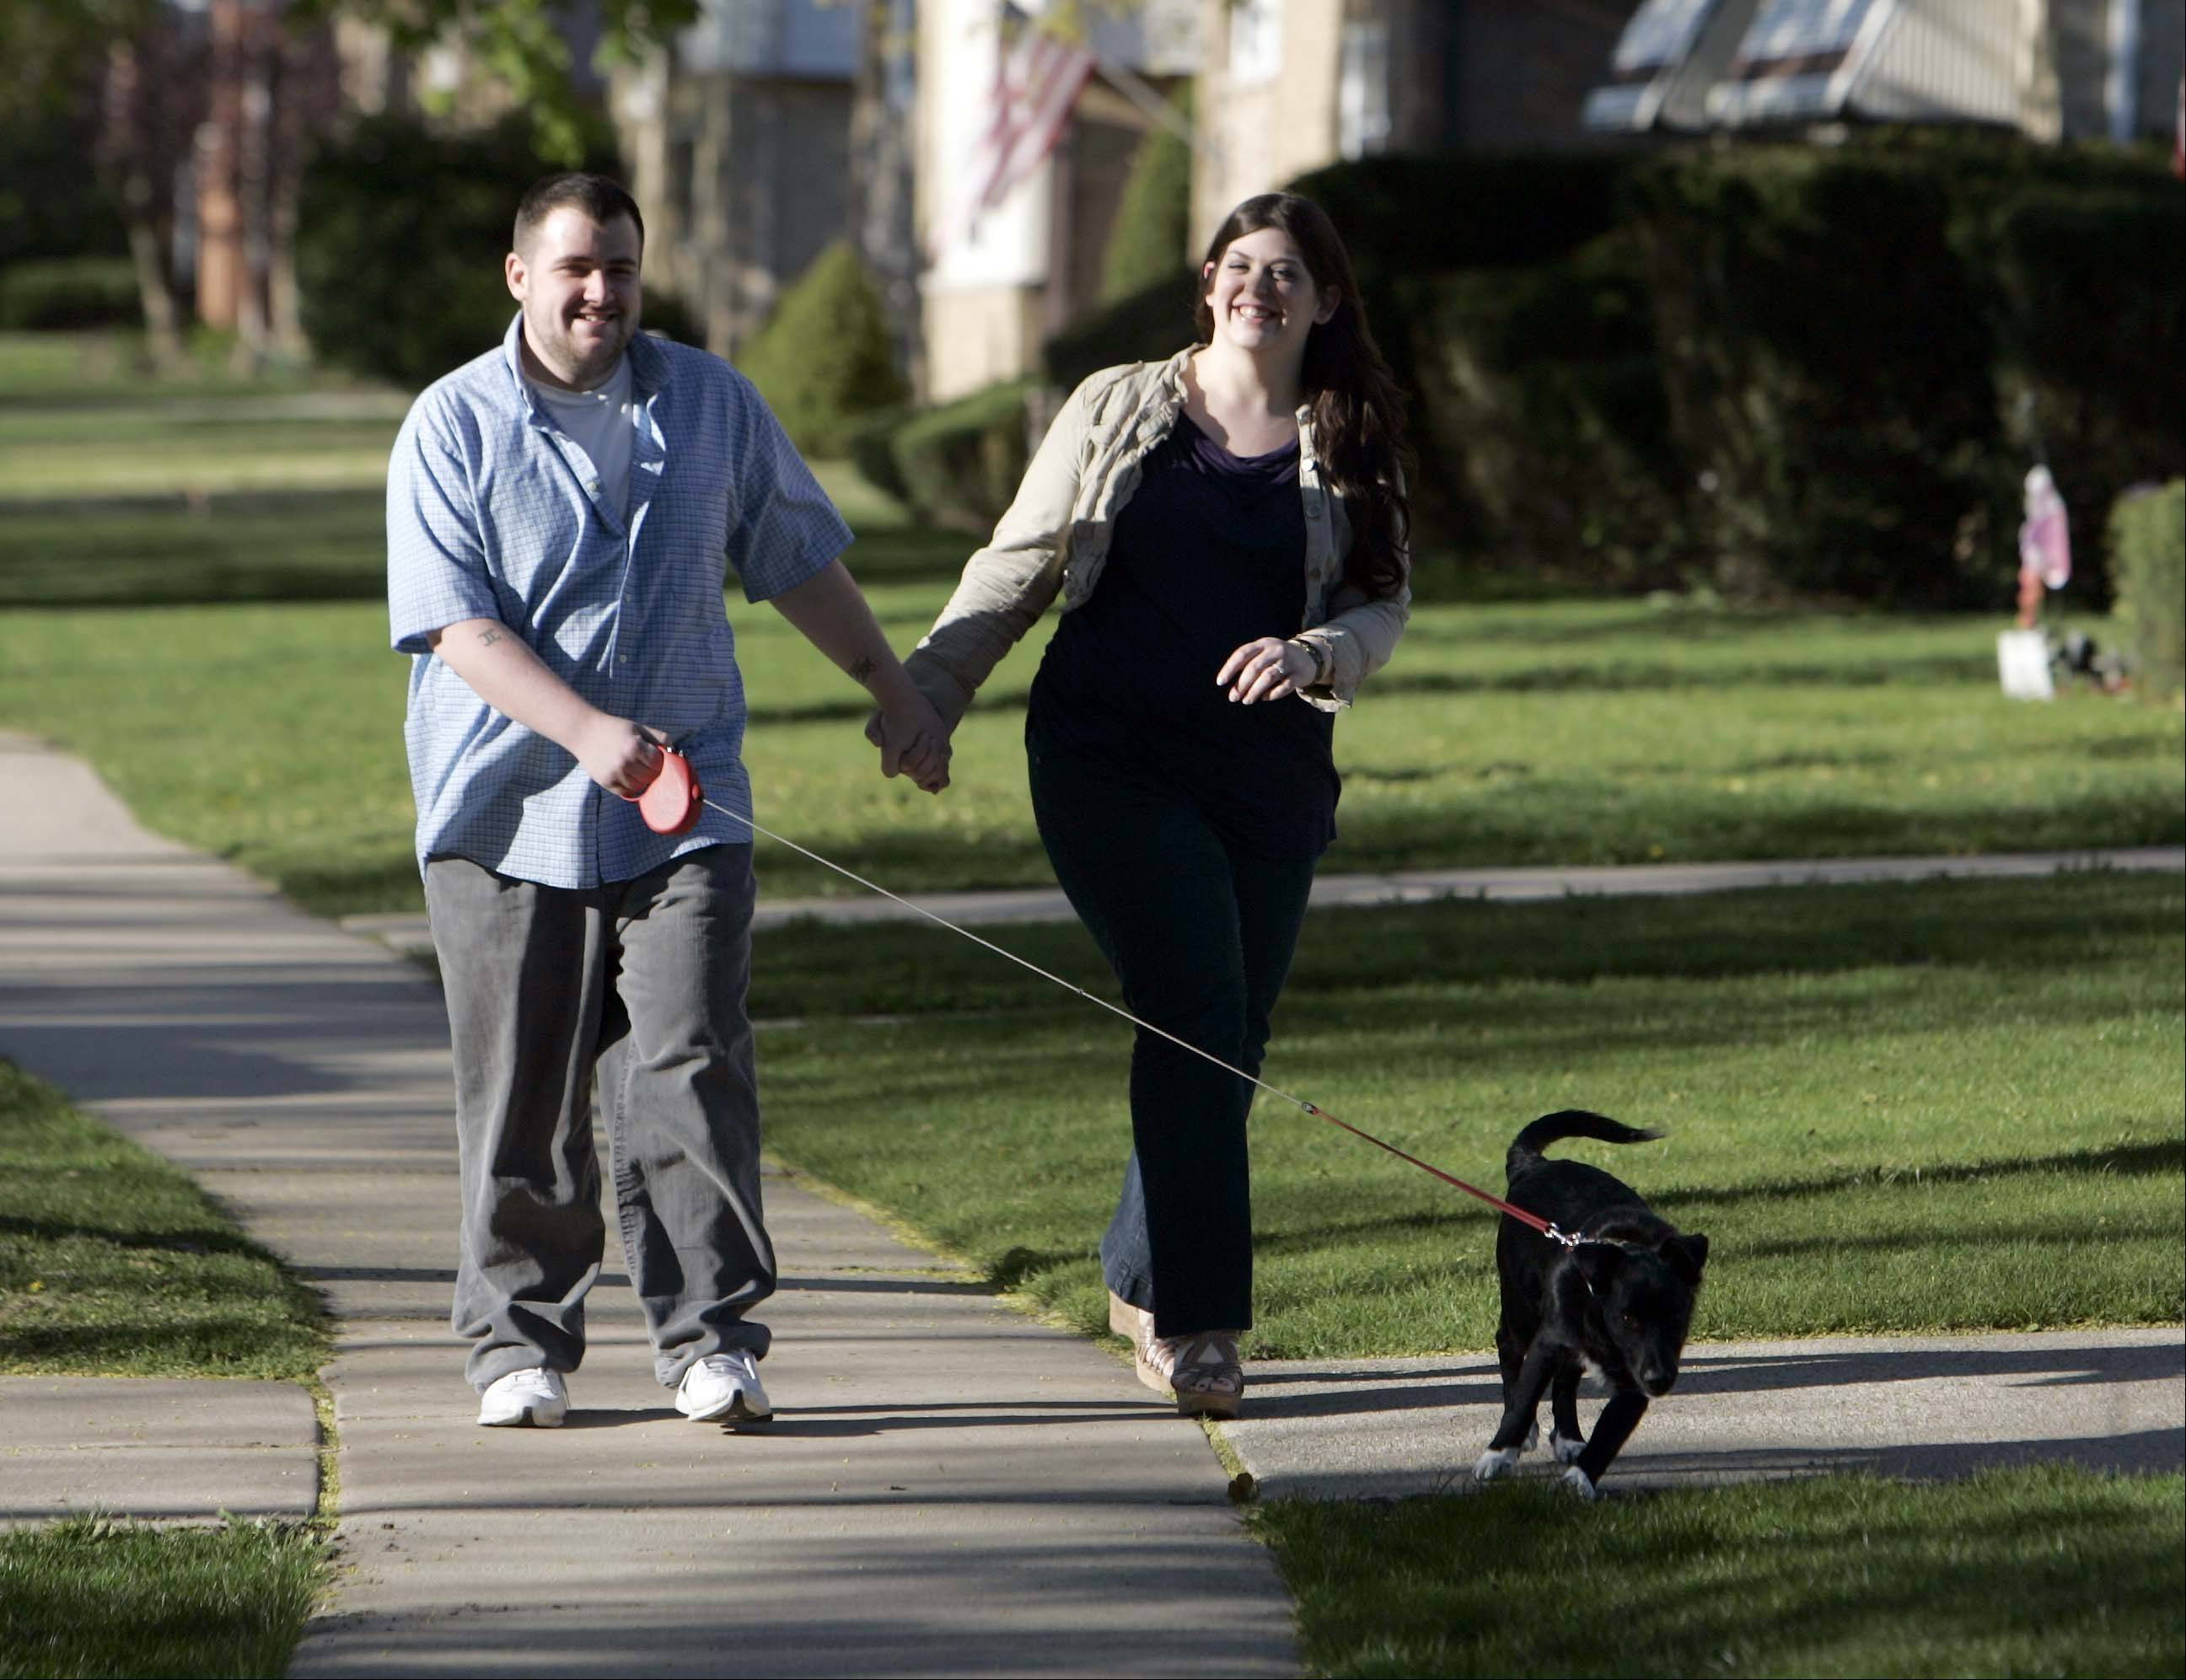 Fittest Loser Michael White and his wife, Lisa, can often be seen walking their dog Staley near their West Dundee home.